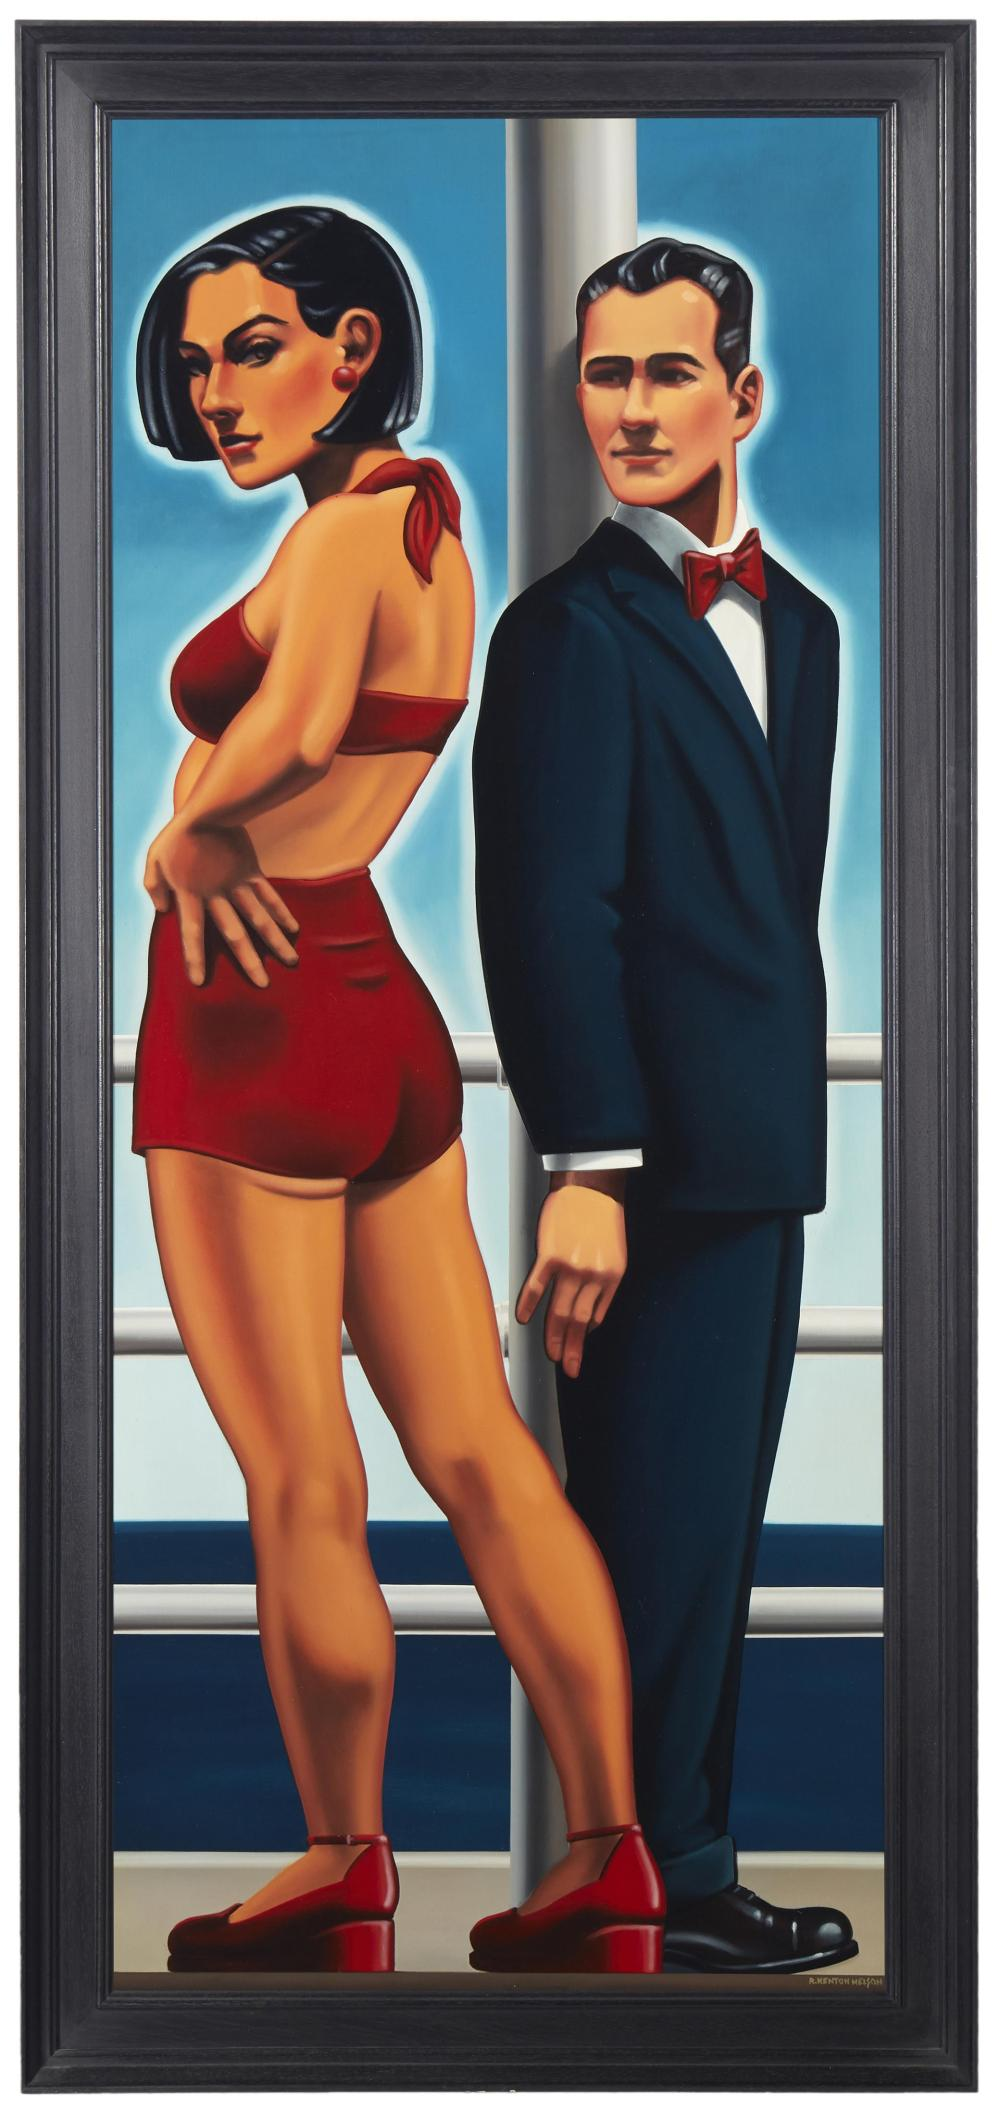 R. Kenton Nelson, (b. 1954, American), Man in a Blue Suit, Oil on canvas, 49